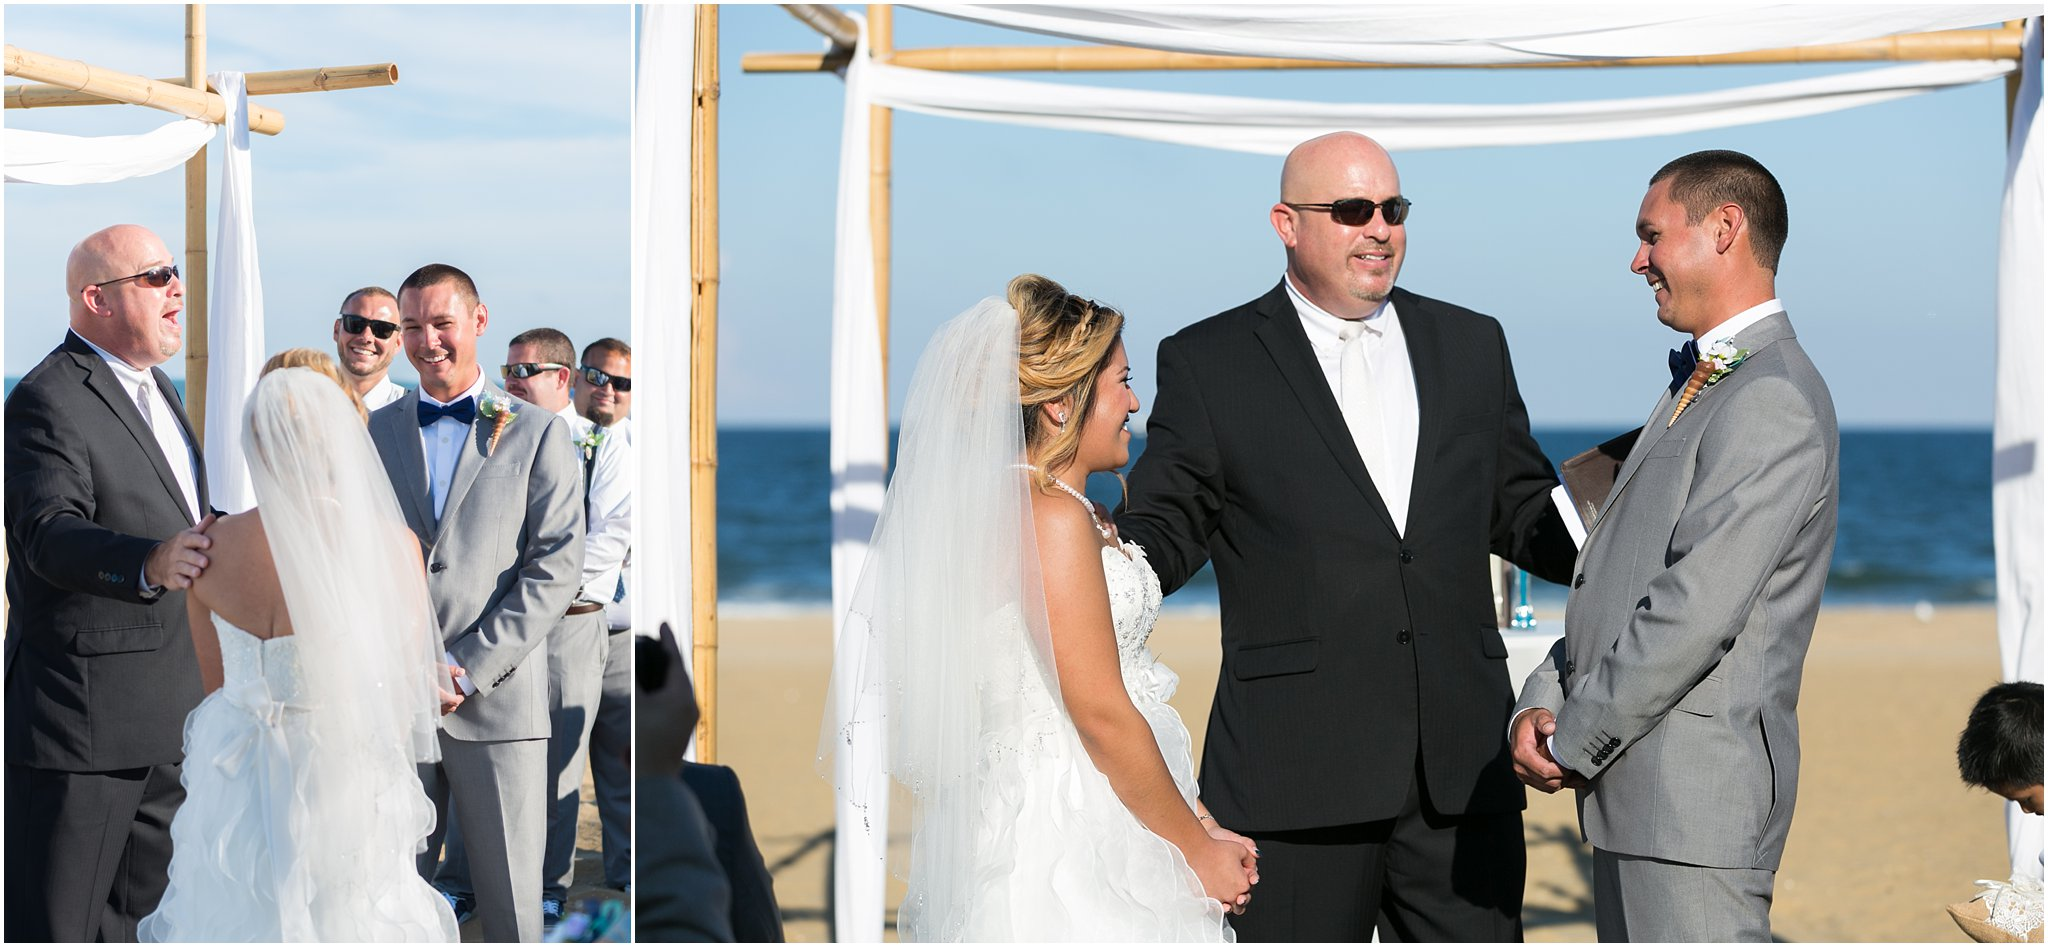 jessica_ryan_photography_wedding_virginia_beach_oceanfront_holiday_inn_north_suites_hotel_wedding_0749